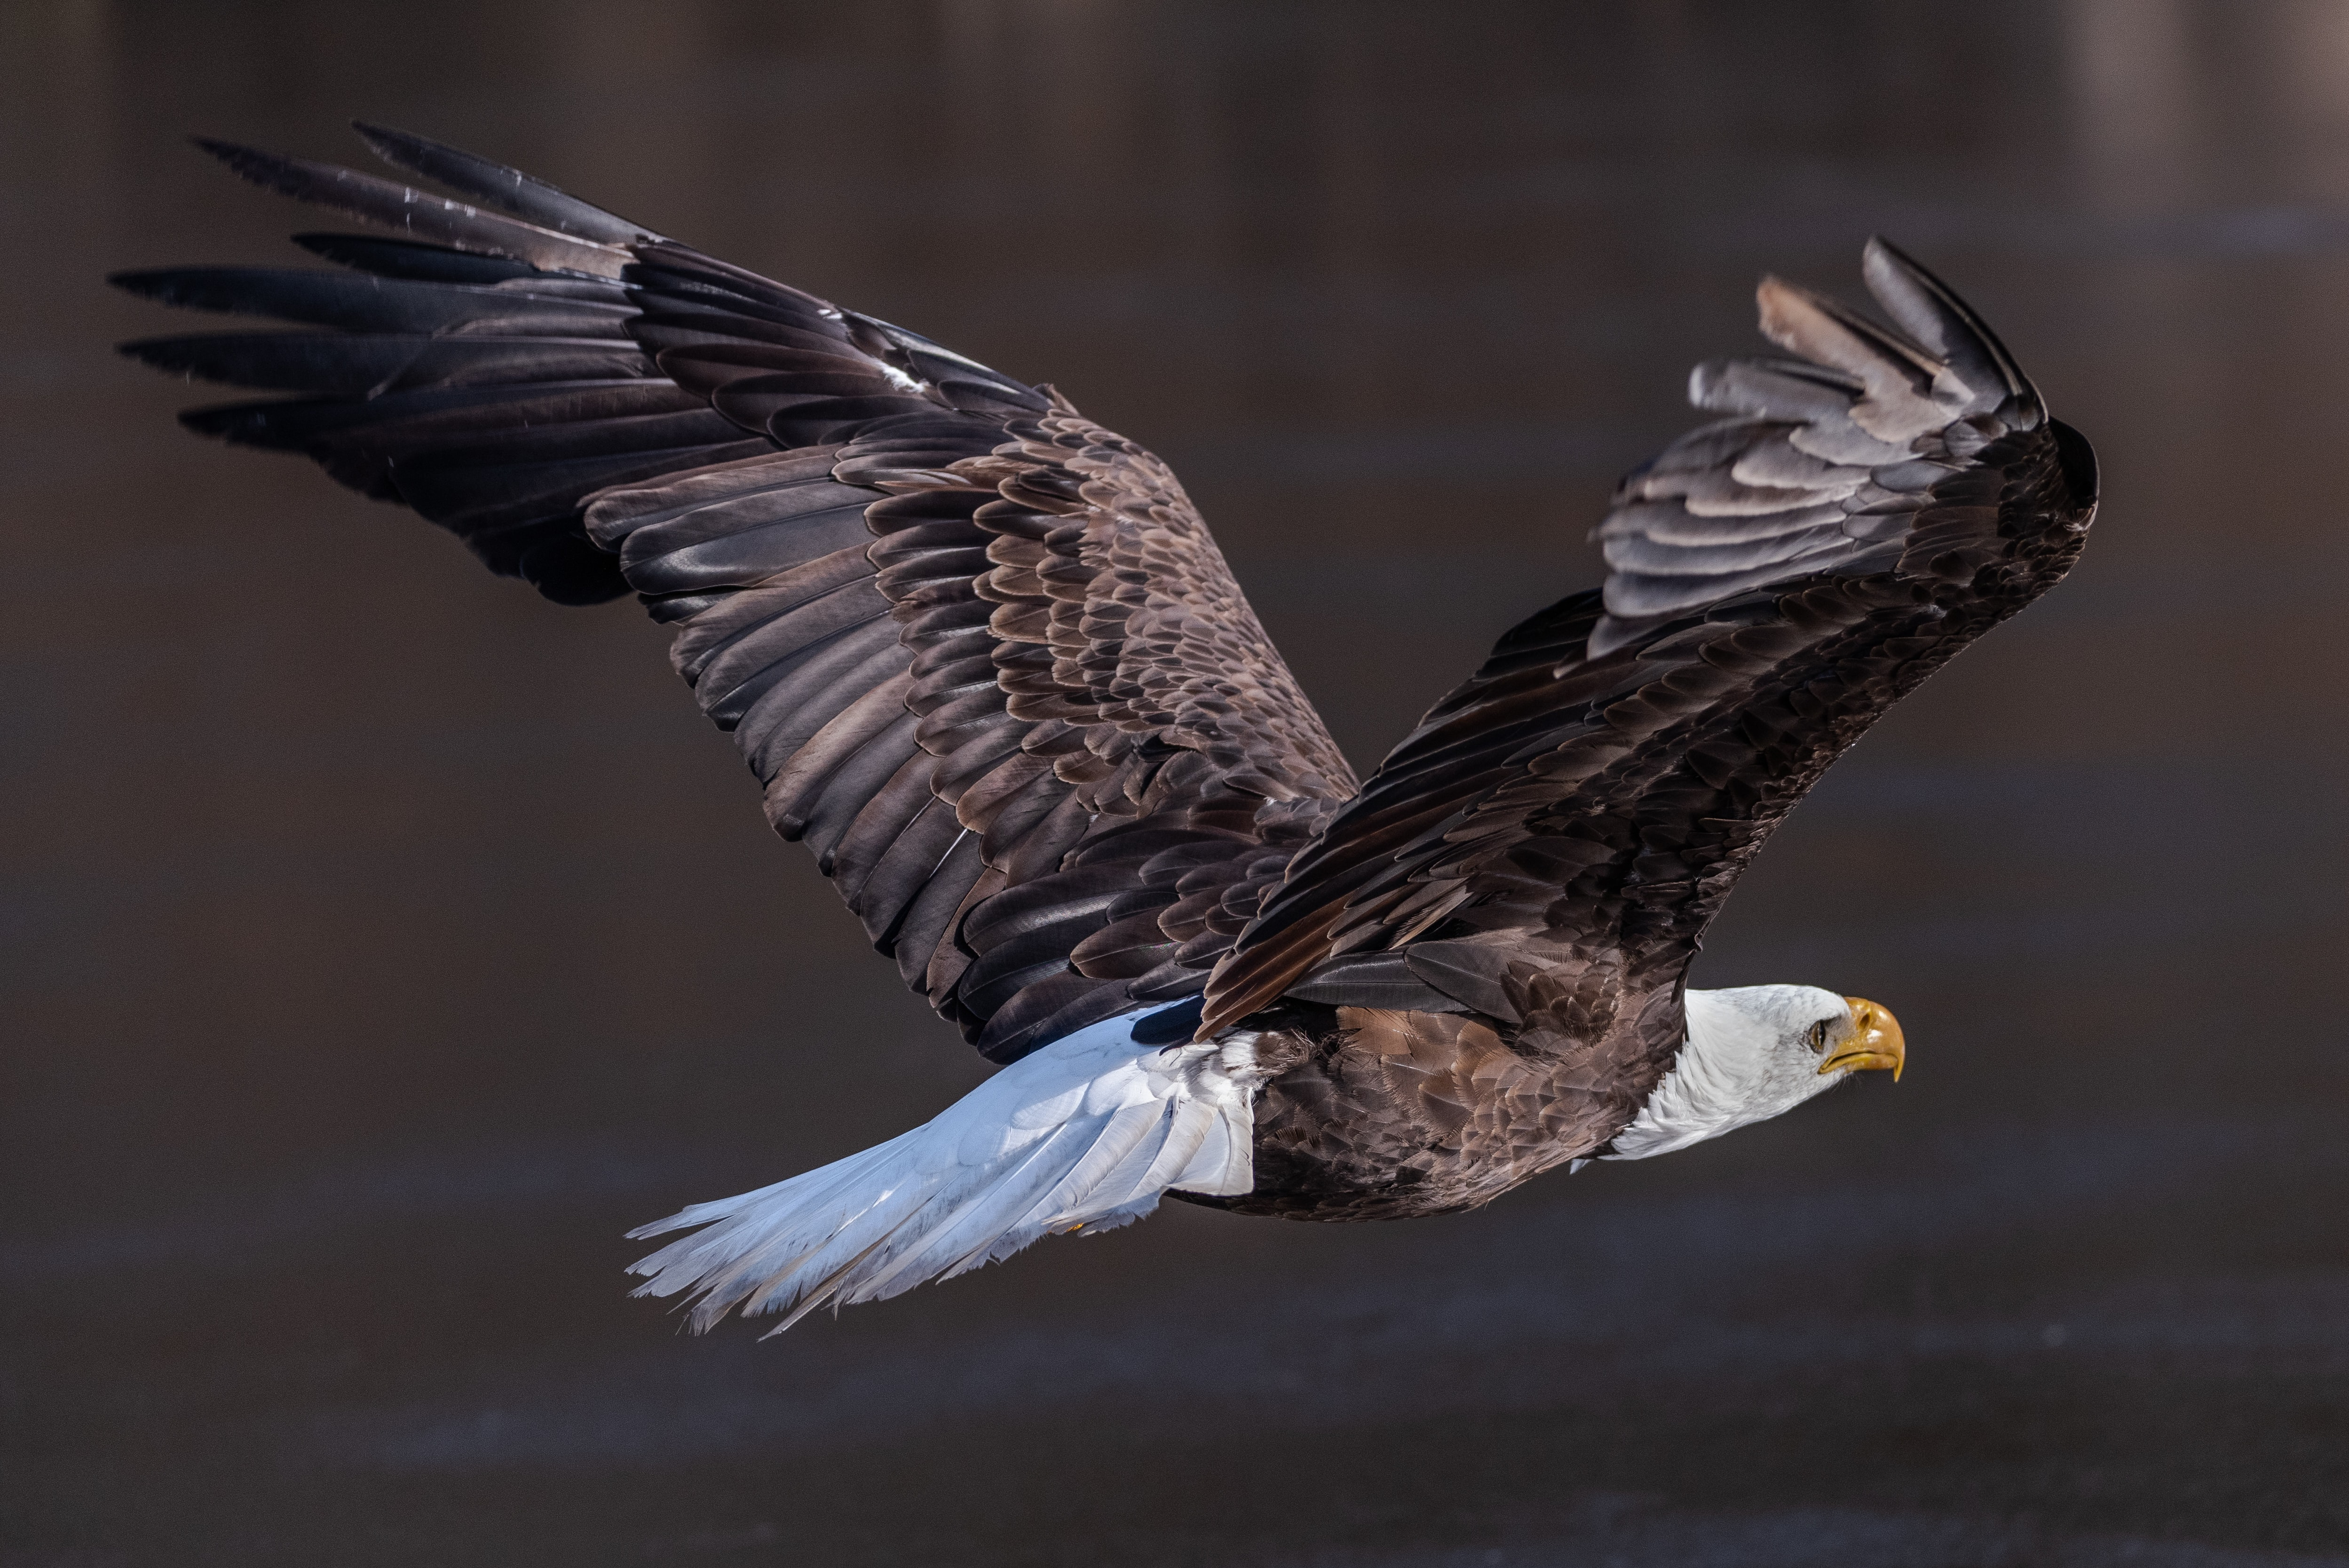 Bald Eagle above body of water